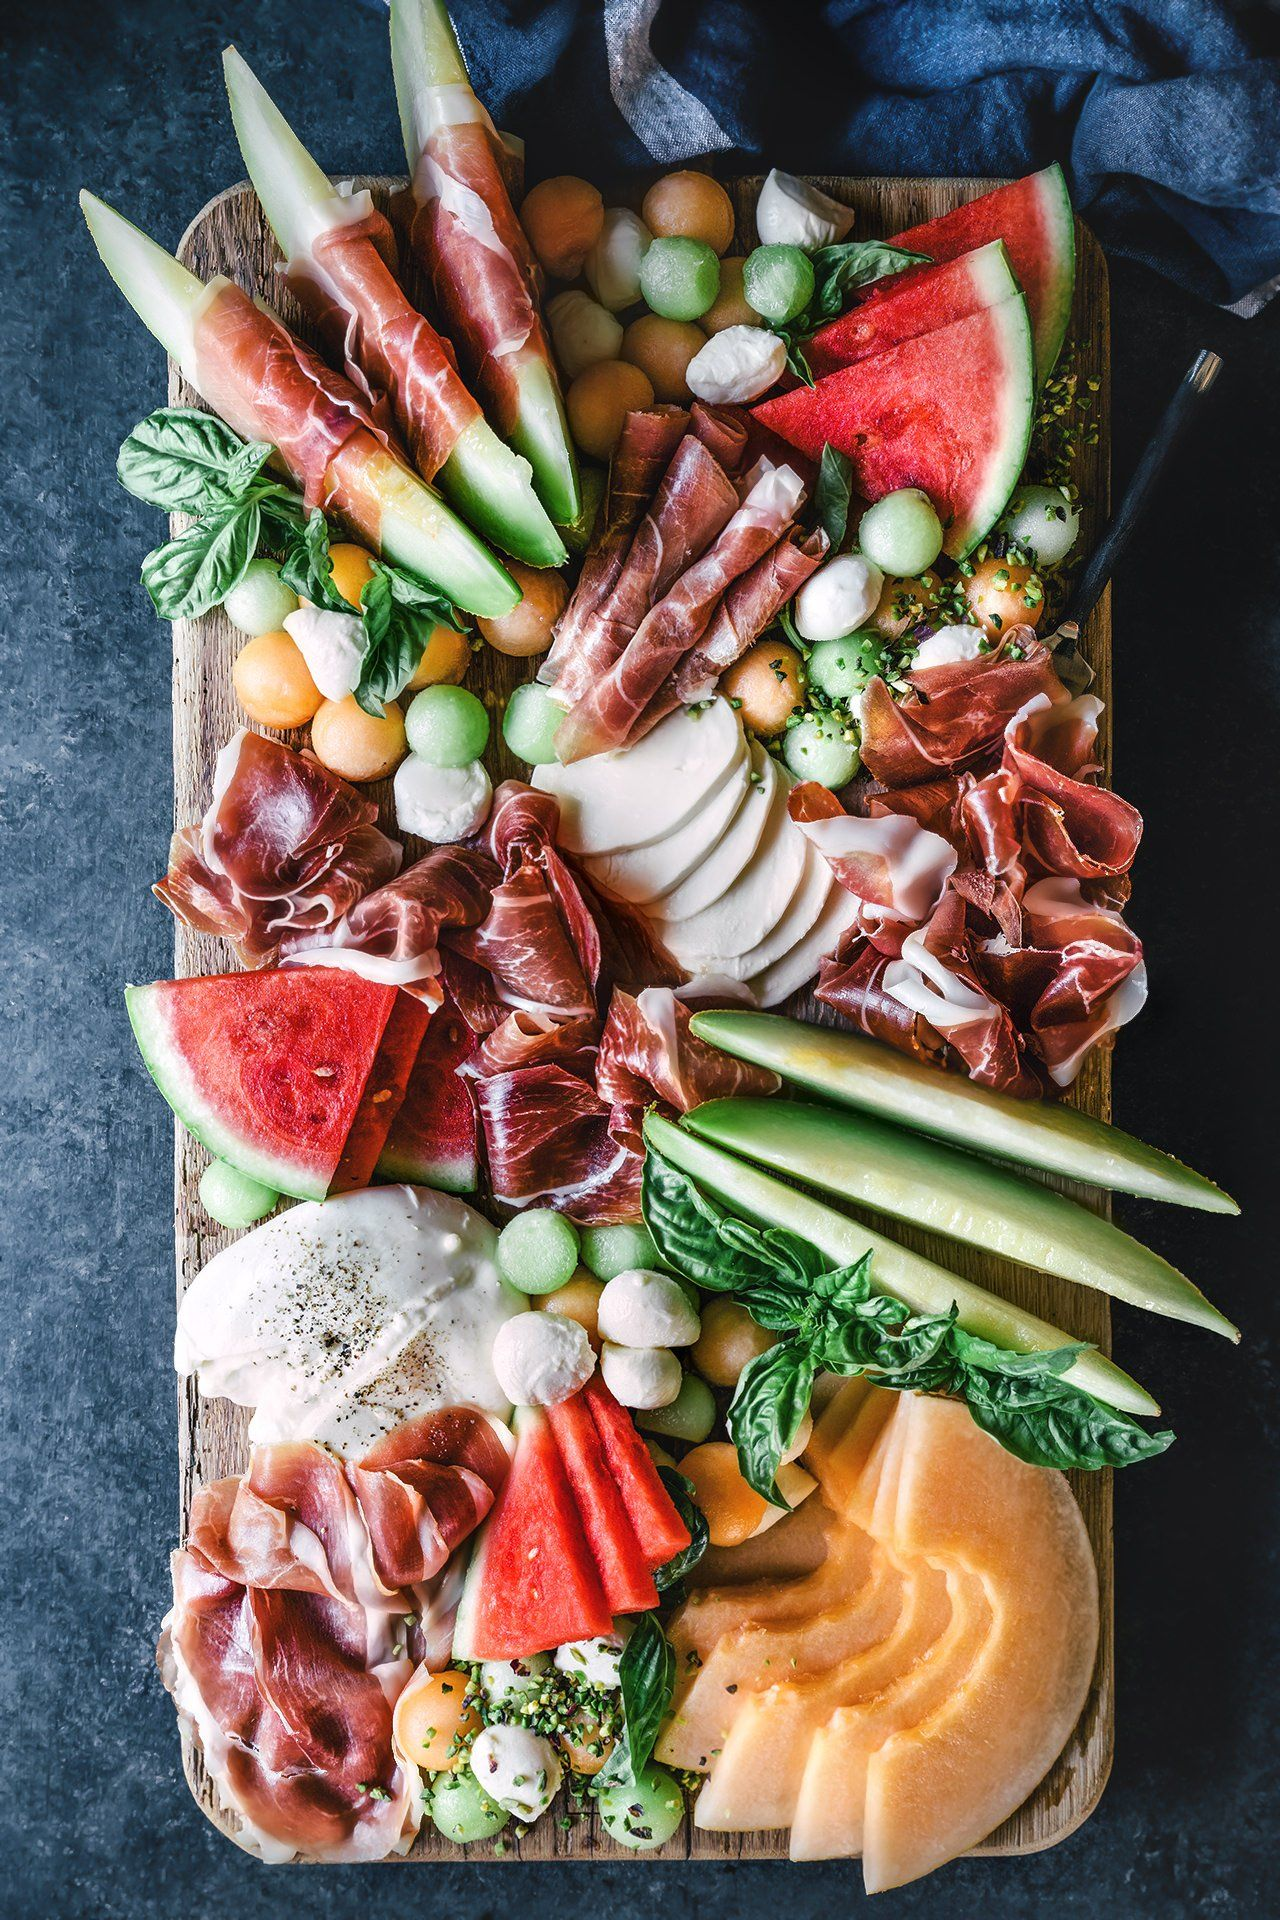 Melon And Prosciutto Platter Appetizer Recipes Wine Recipes Food Platters